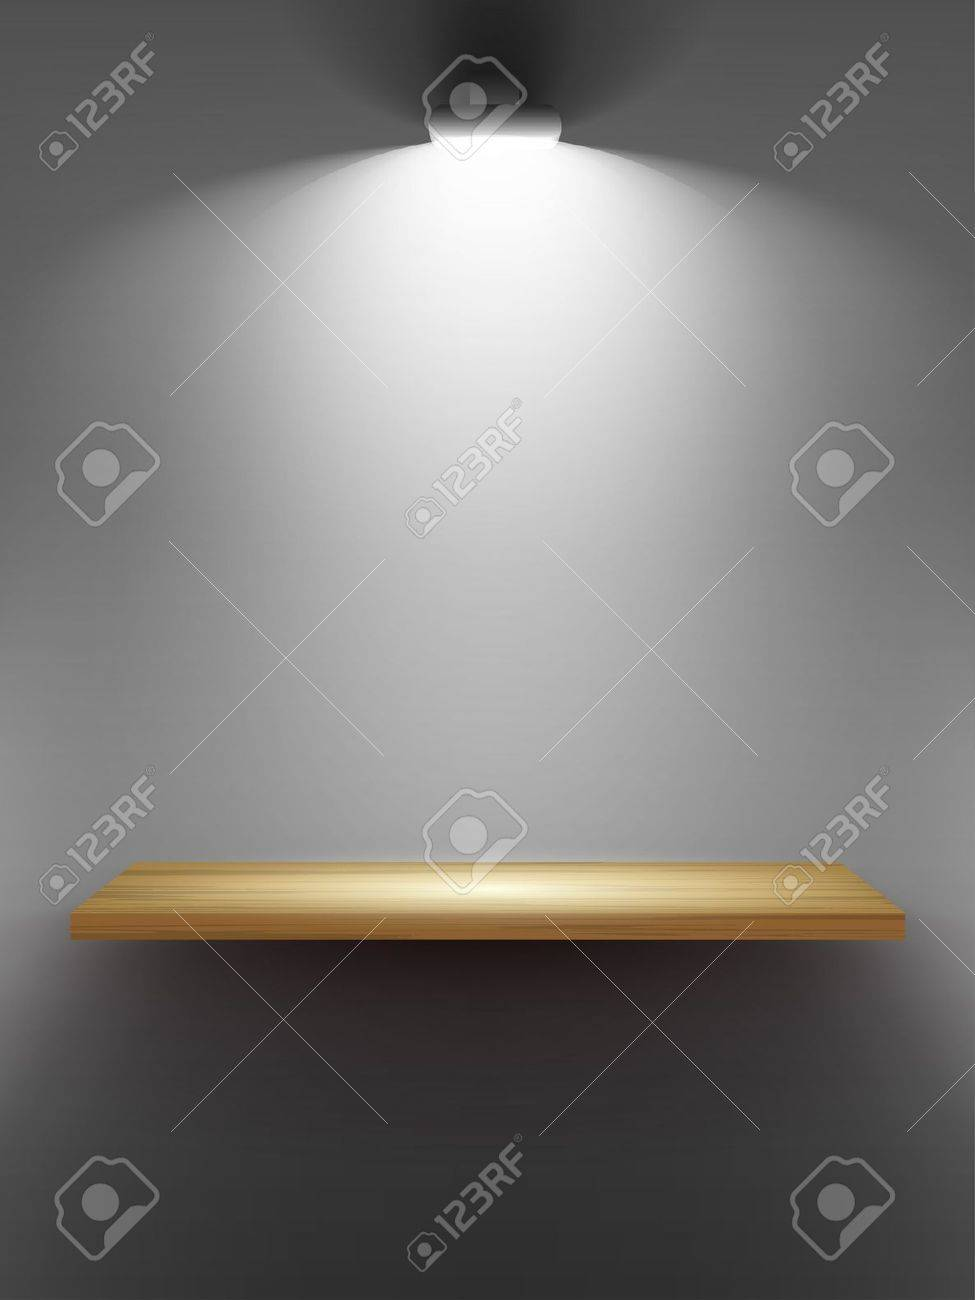 Interior wooden shelves free vector - Empty Wooden Shelf On The Wall Illuminated By Searchlights Part Of Set Vector Interior Stock